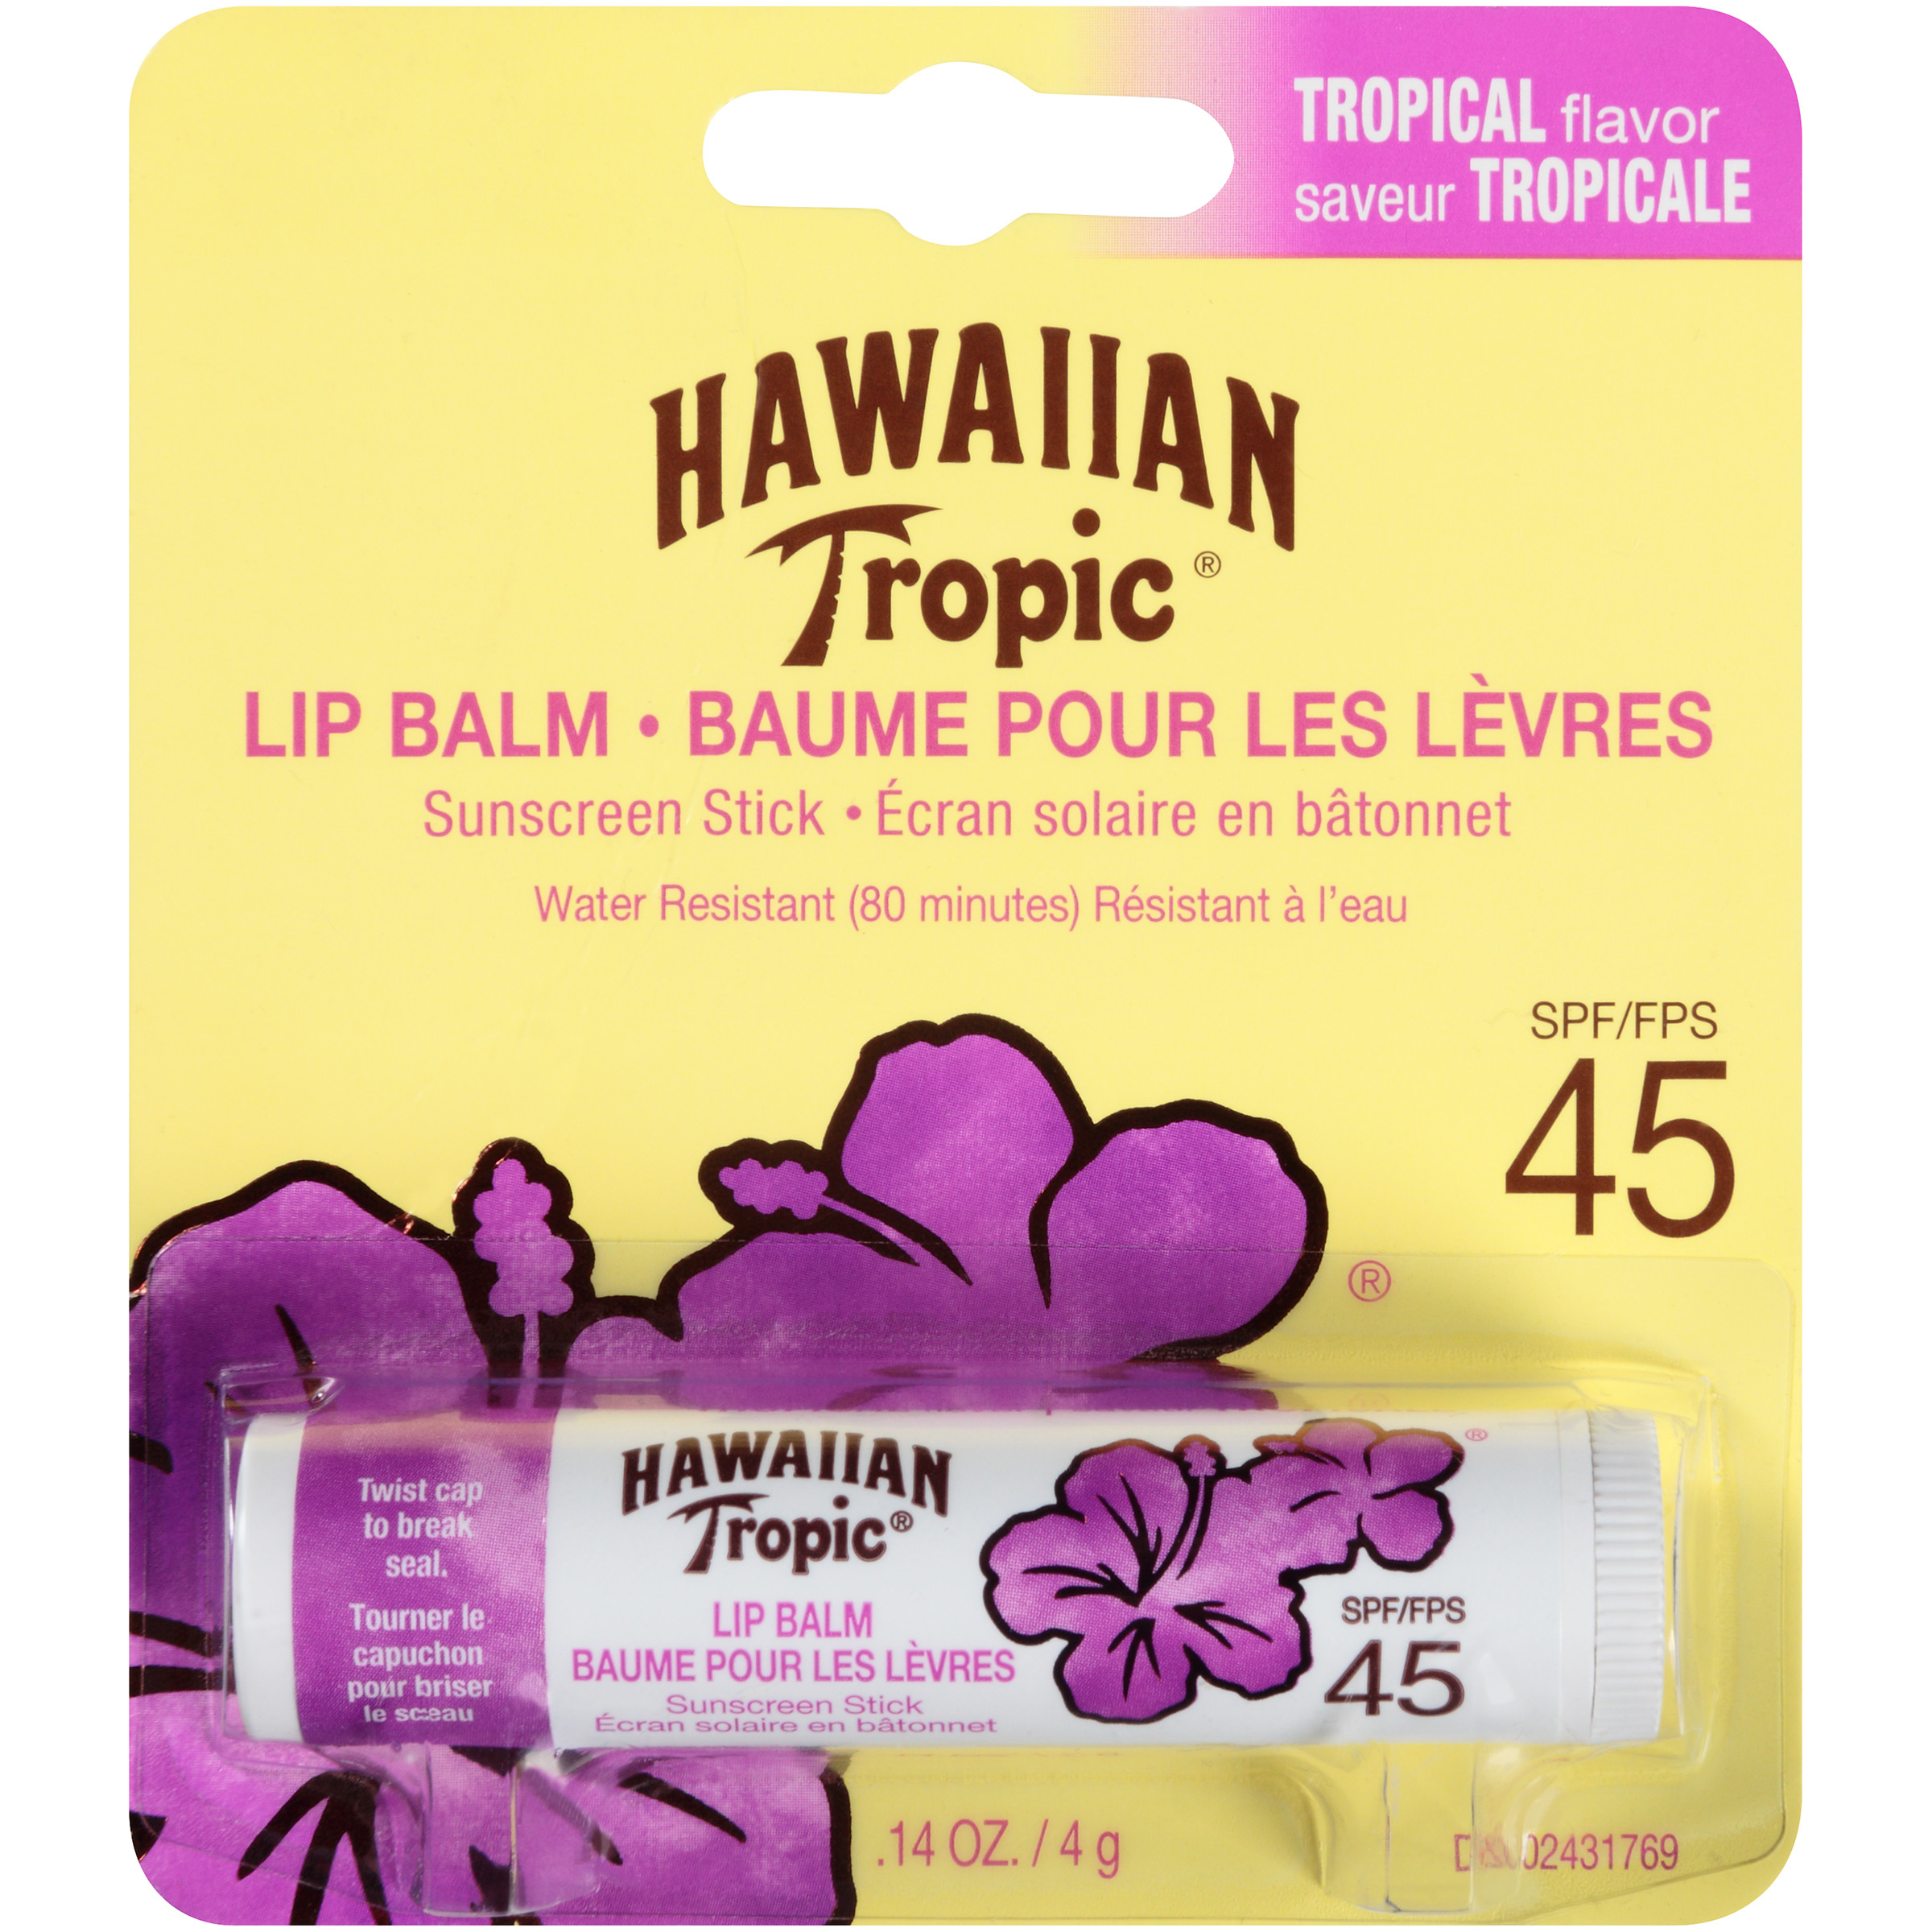 Hawaiian Tropic Lip Balm Sunscreen Stick Tropical Flavor SPF 45 - 1 Count